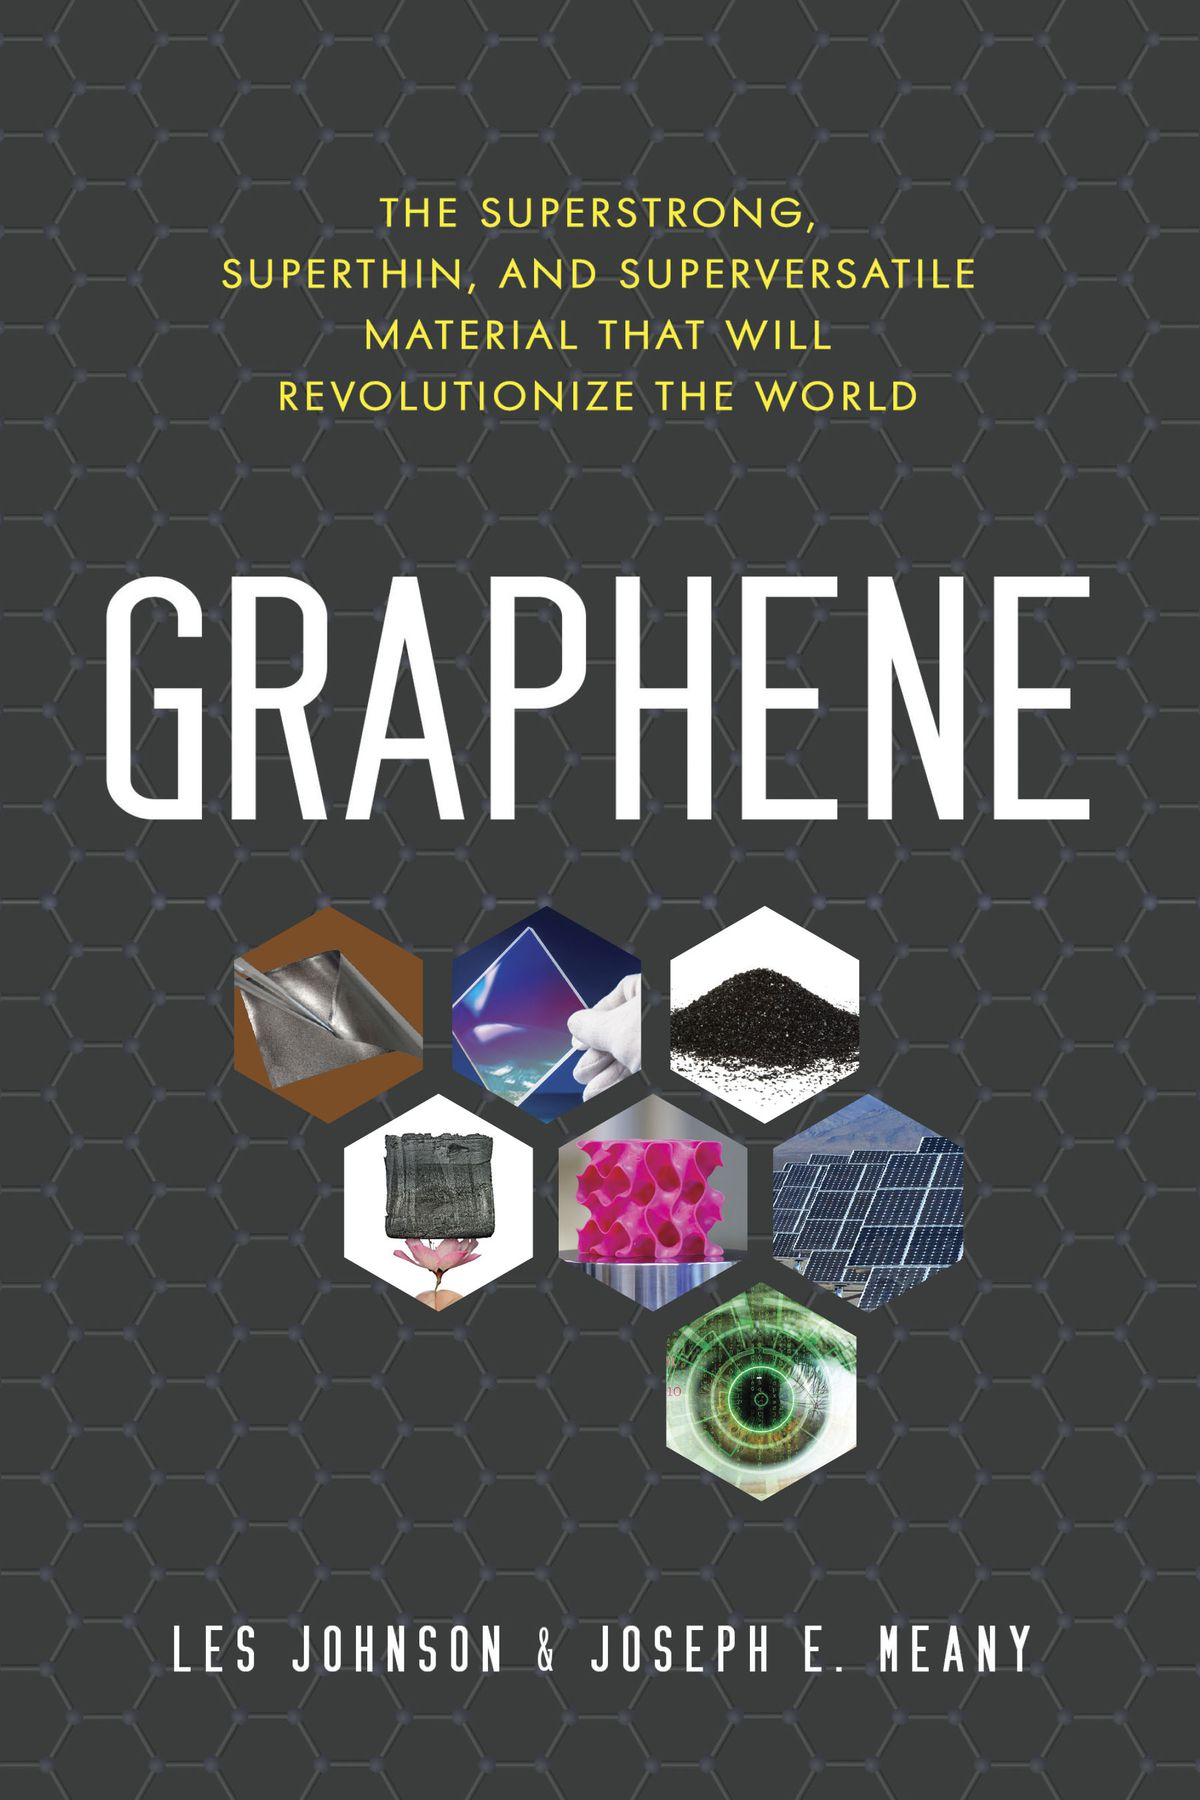 Experts explain the science behind graphene, the new supermaterial